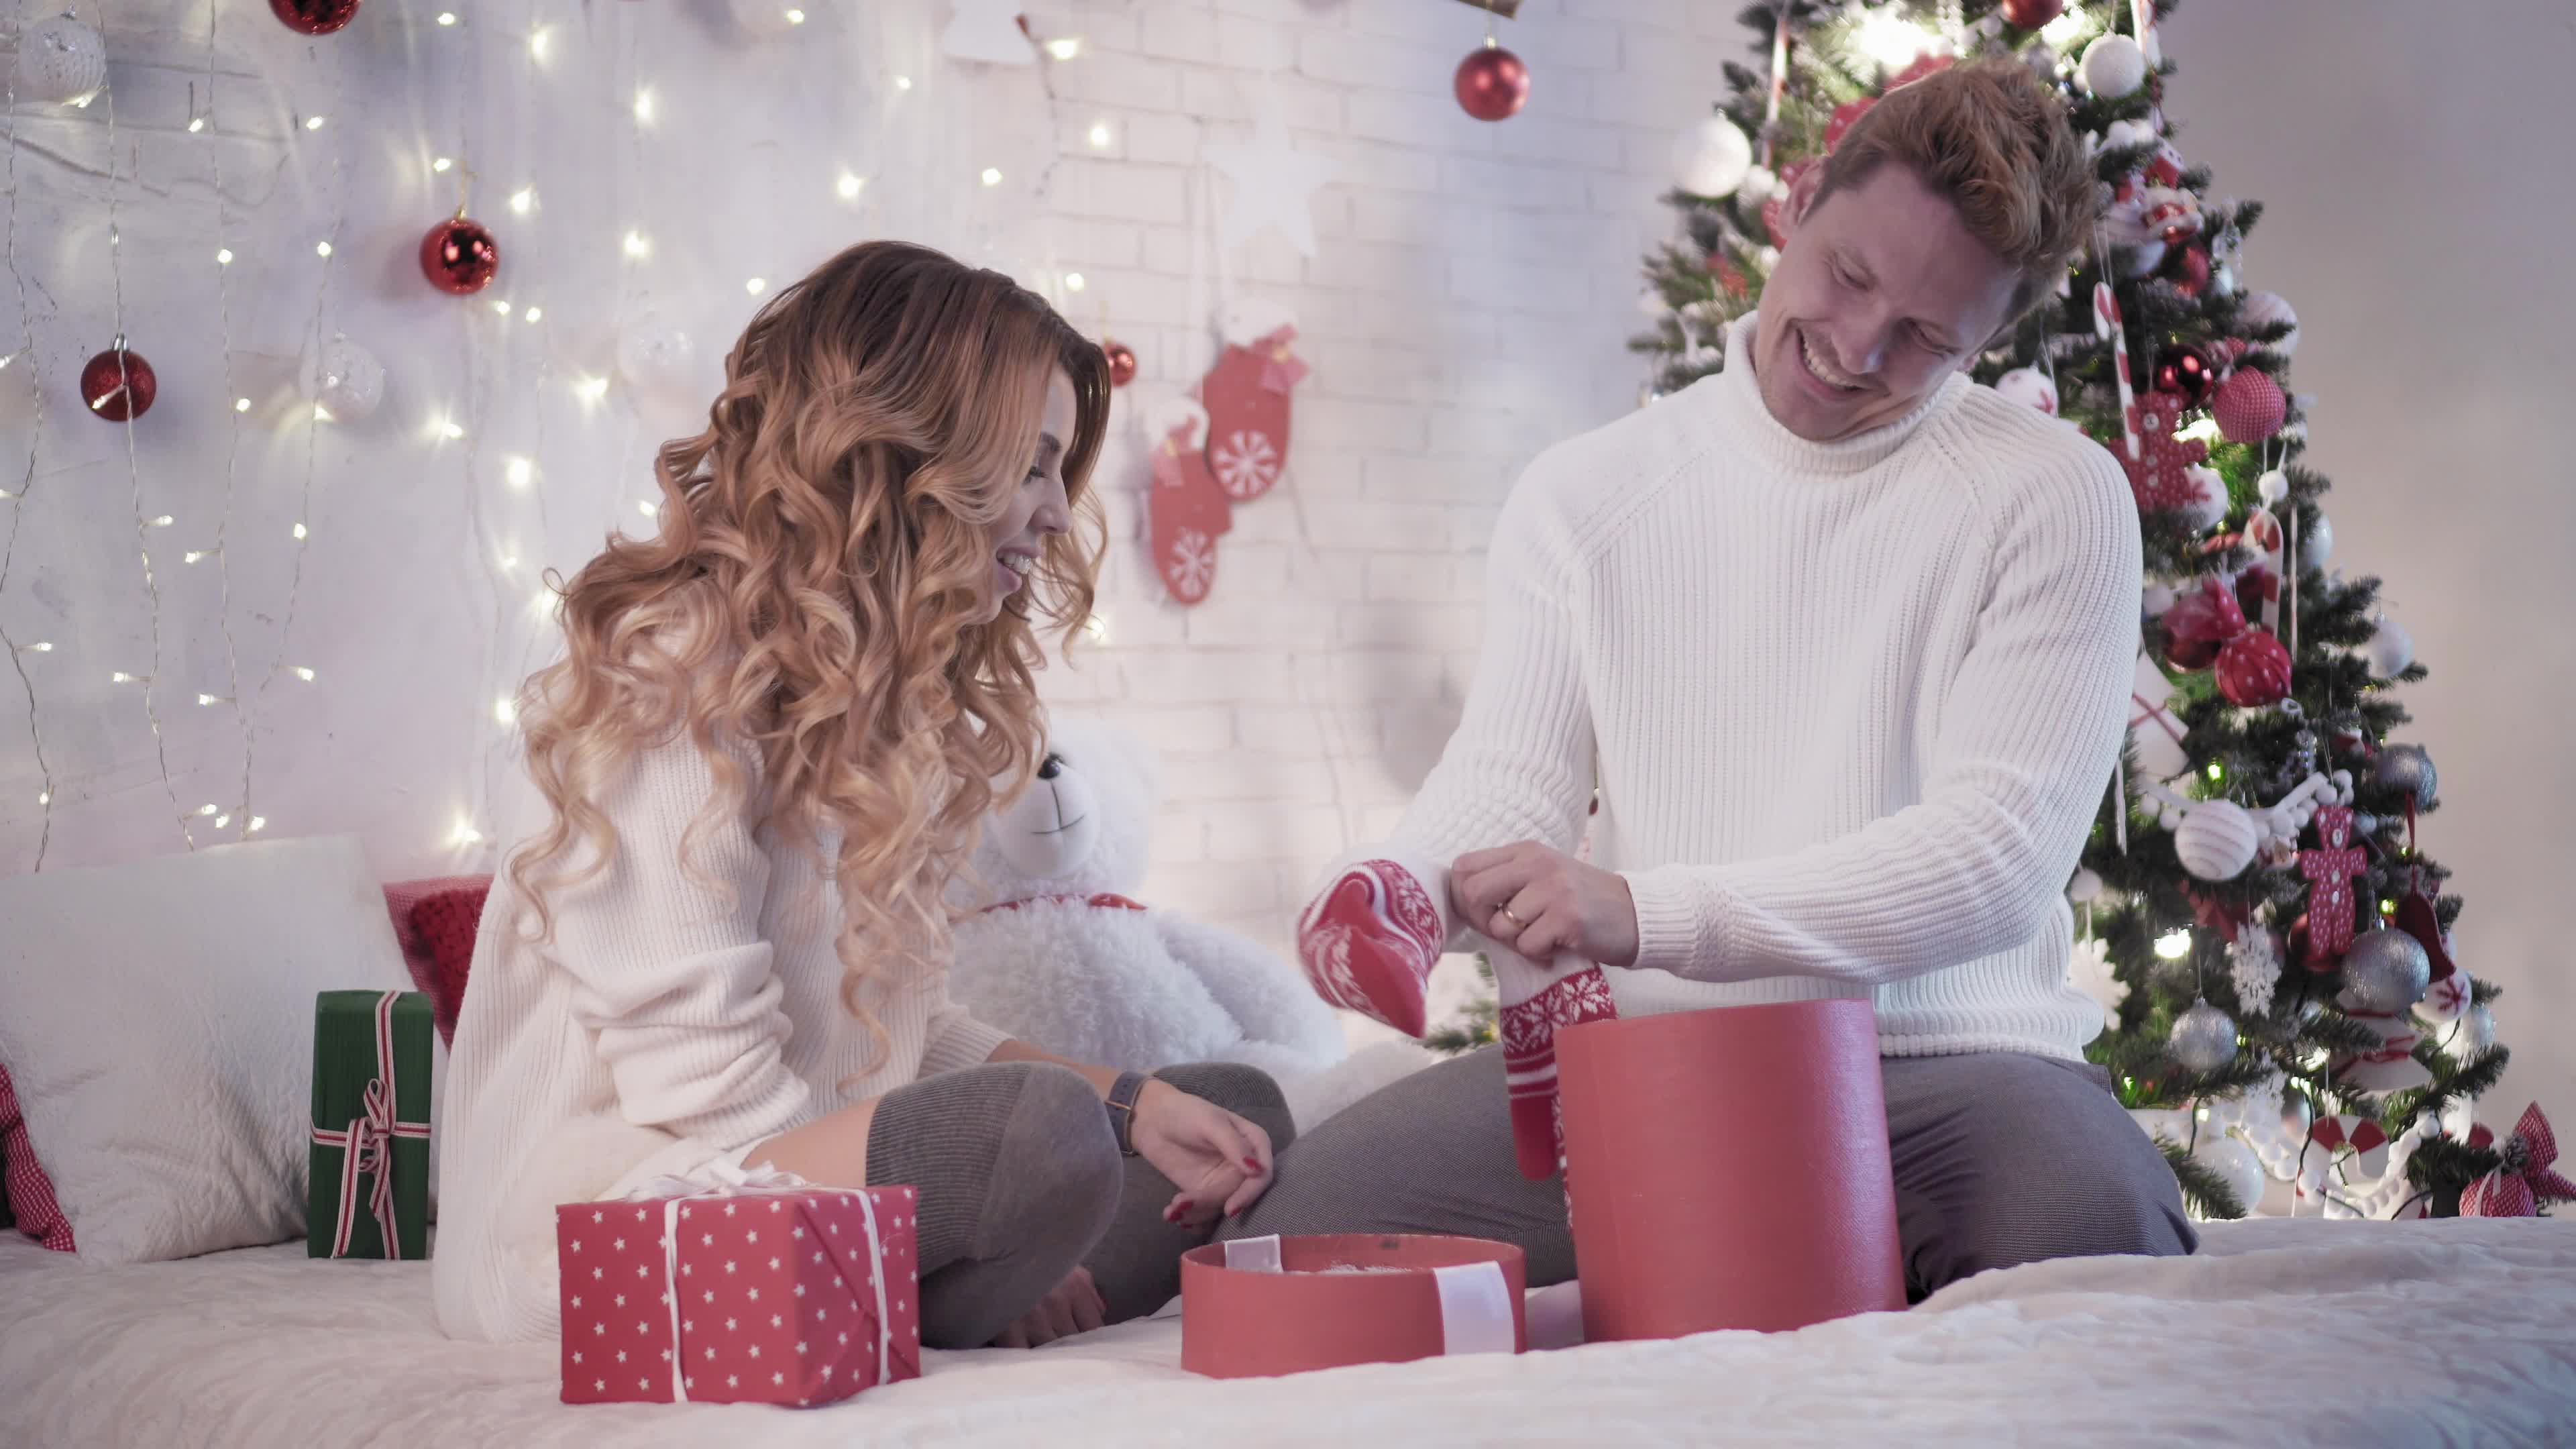 Man and woman exchanging Christmas gifts (Thinkstock/PA)